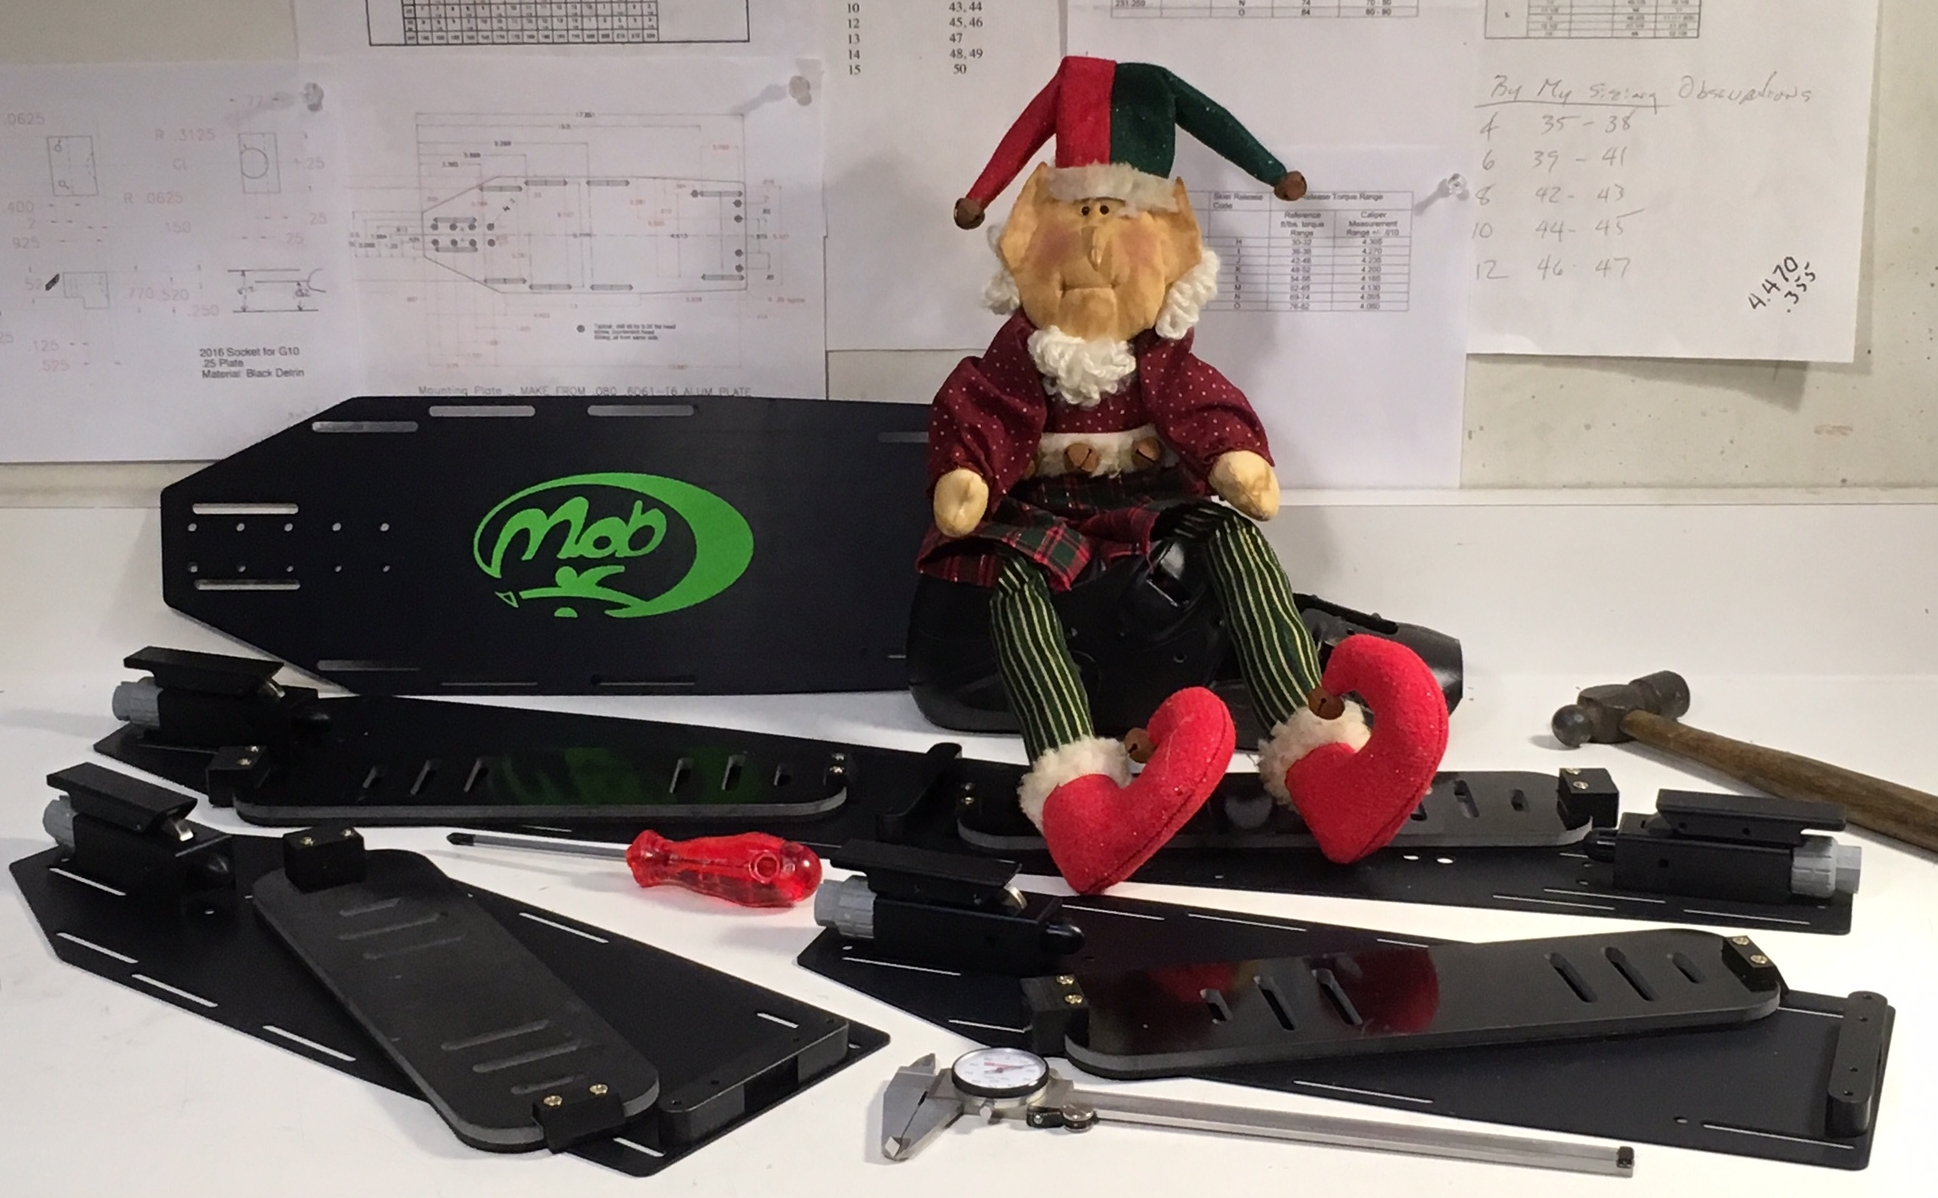 The MOB elf has been busy in the workshop getting ready for Black Friday.